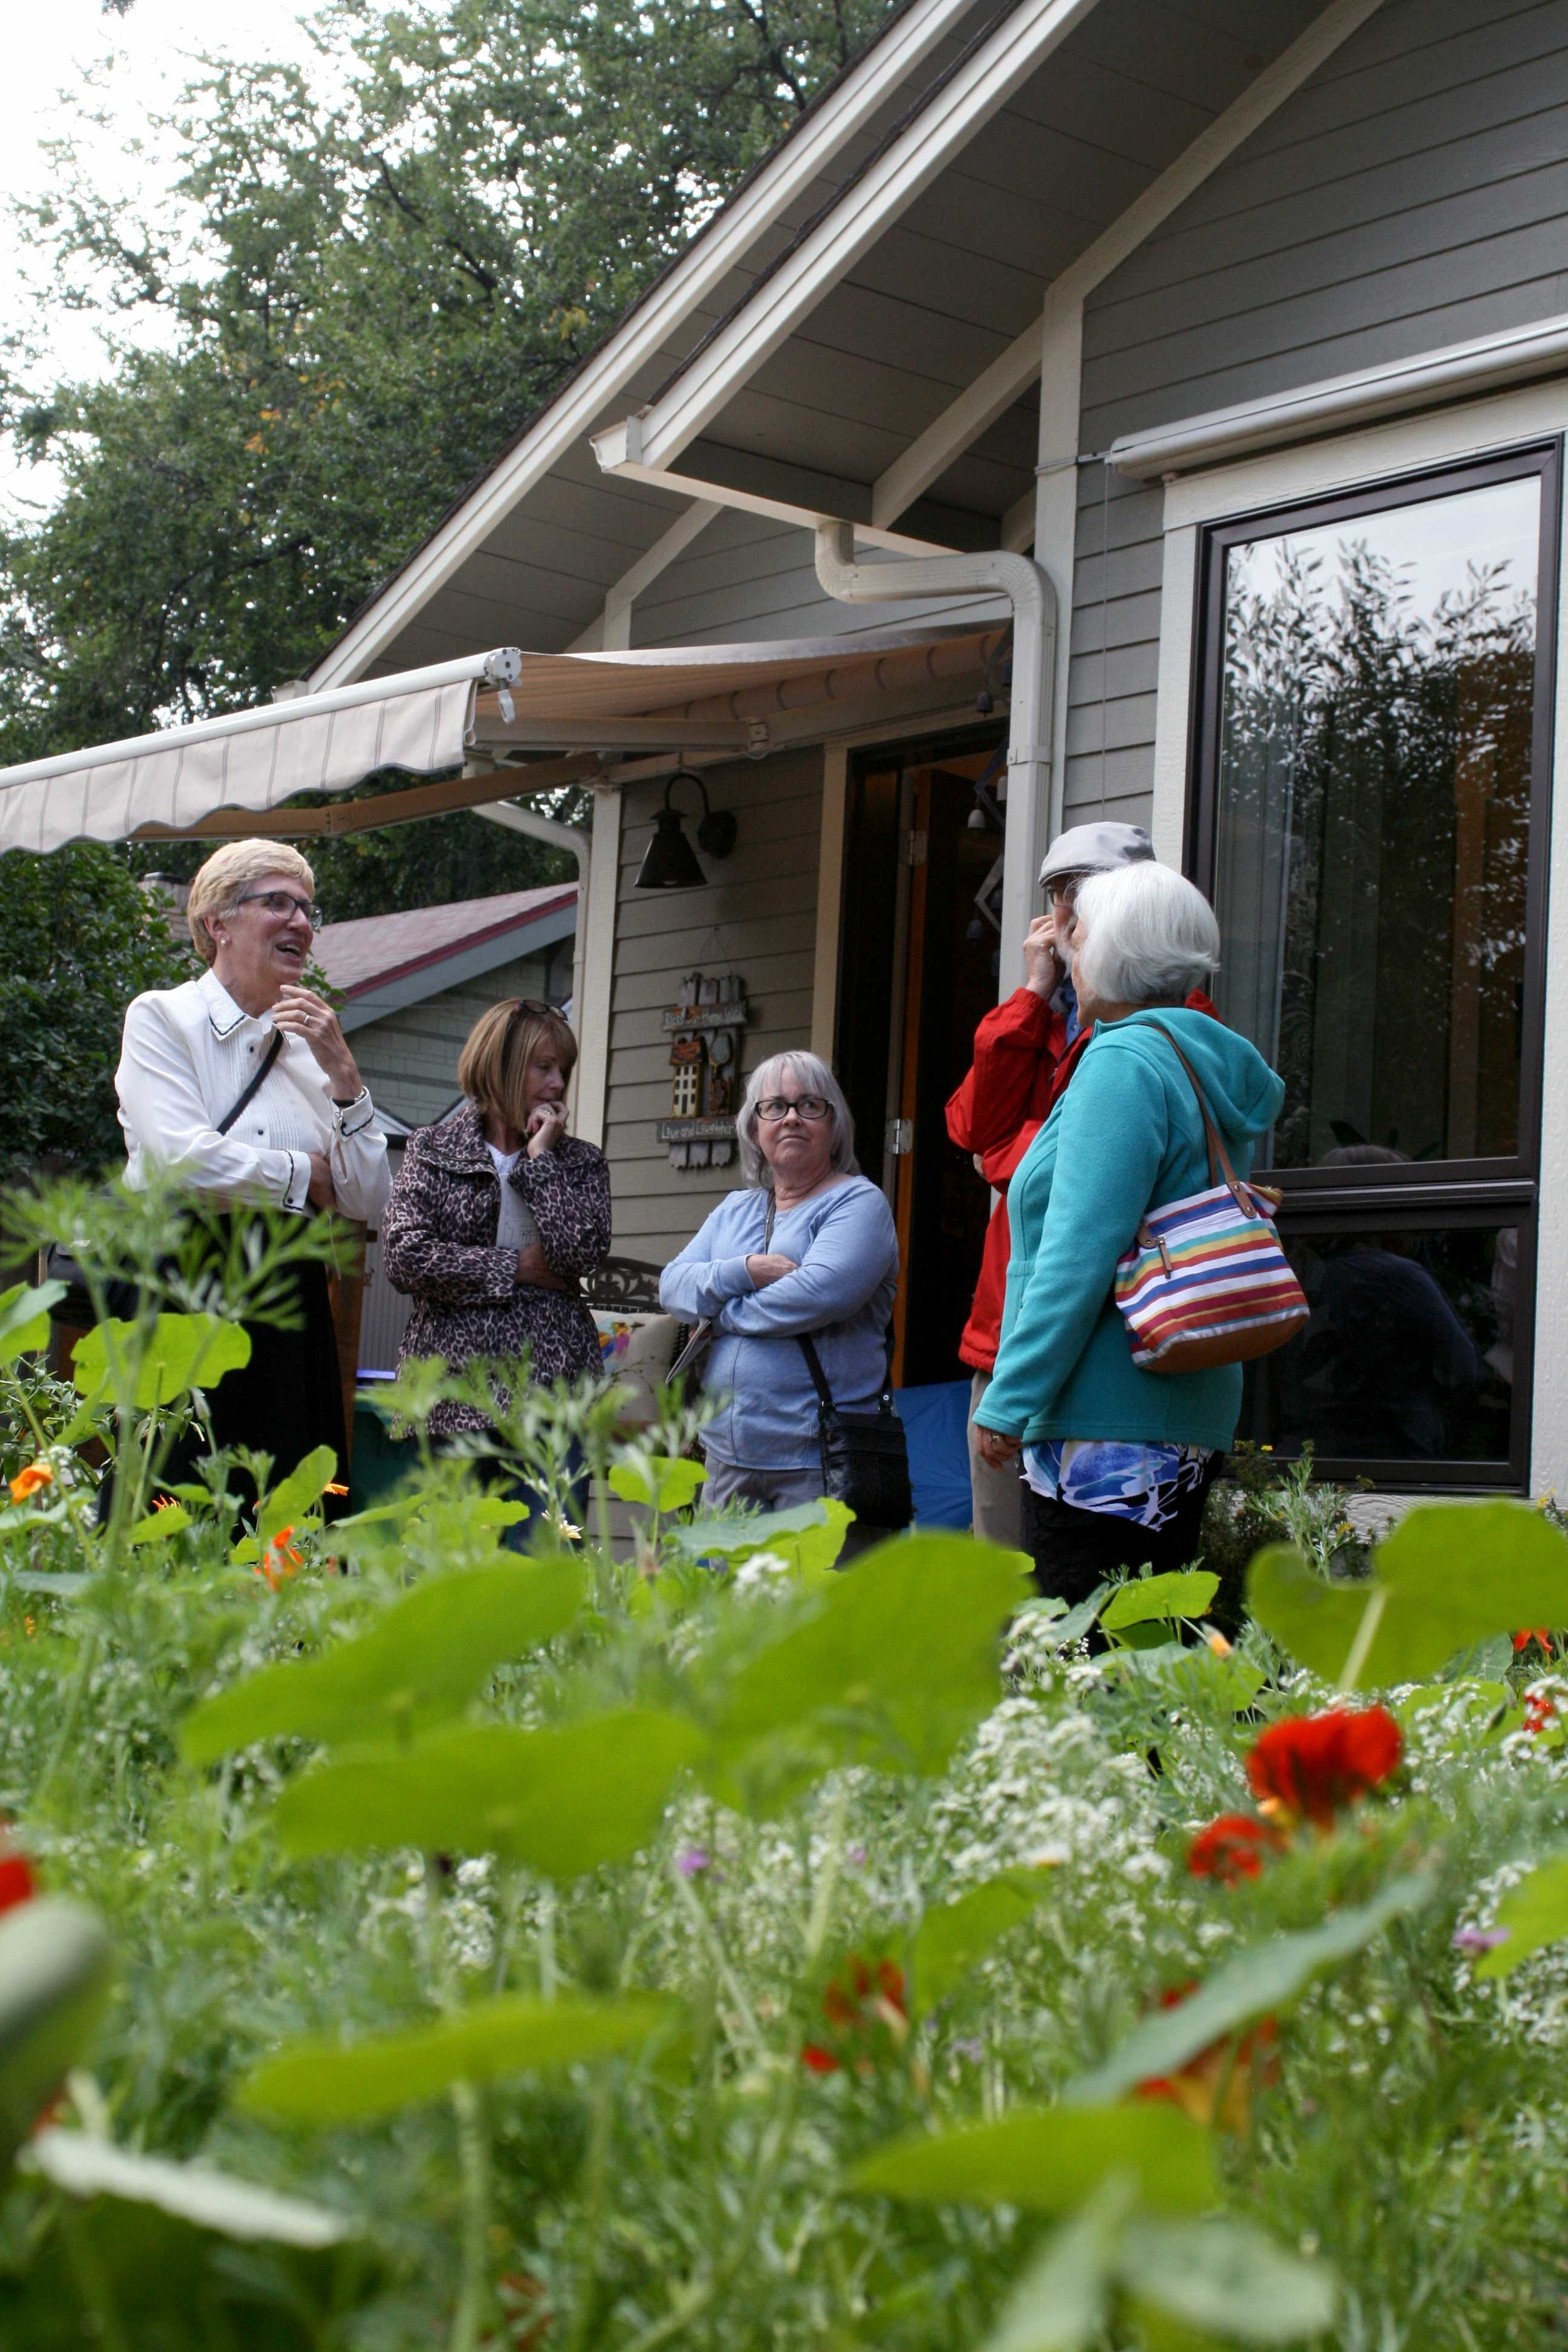 The Pinkerton's share the story of their Old Town Fort Collins home